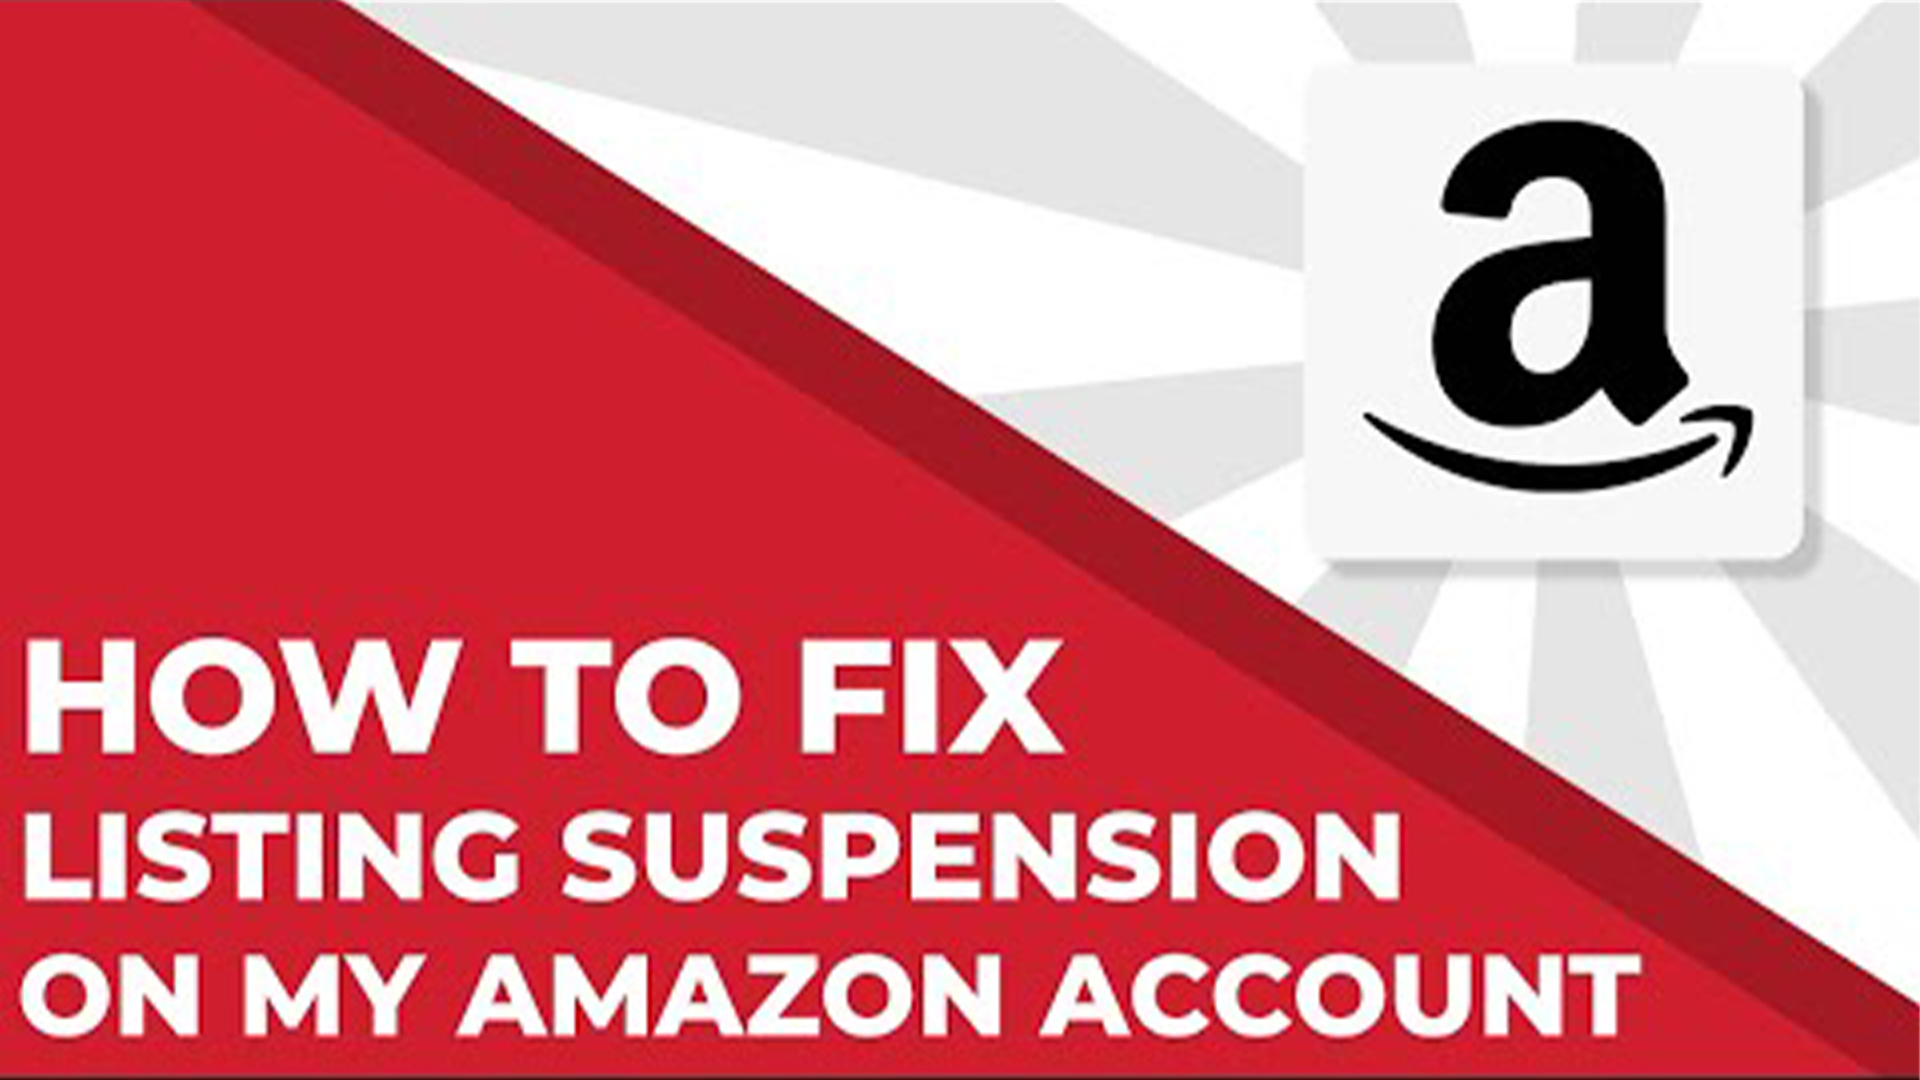 Brett Sondike, director of client relations at AmazonSellersLawyer.com explains what an Amazon listing suspension does to your account if ignored.